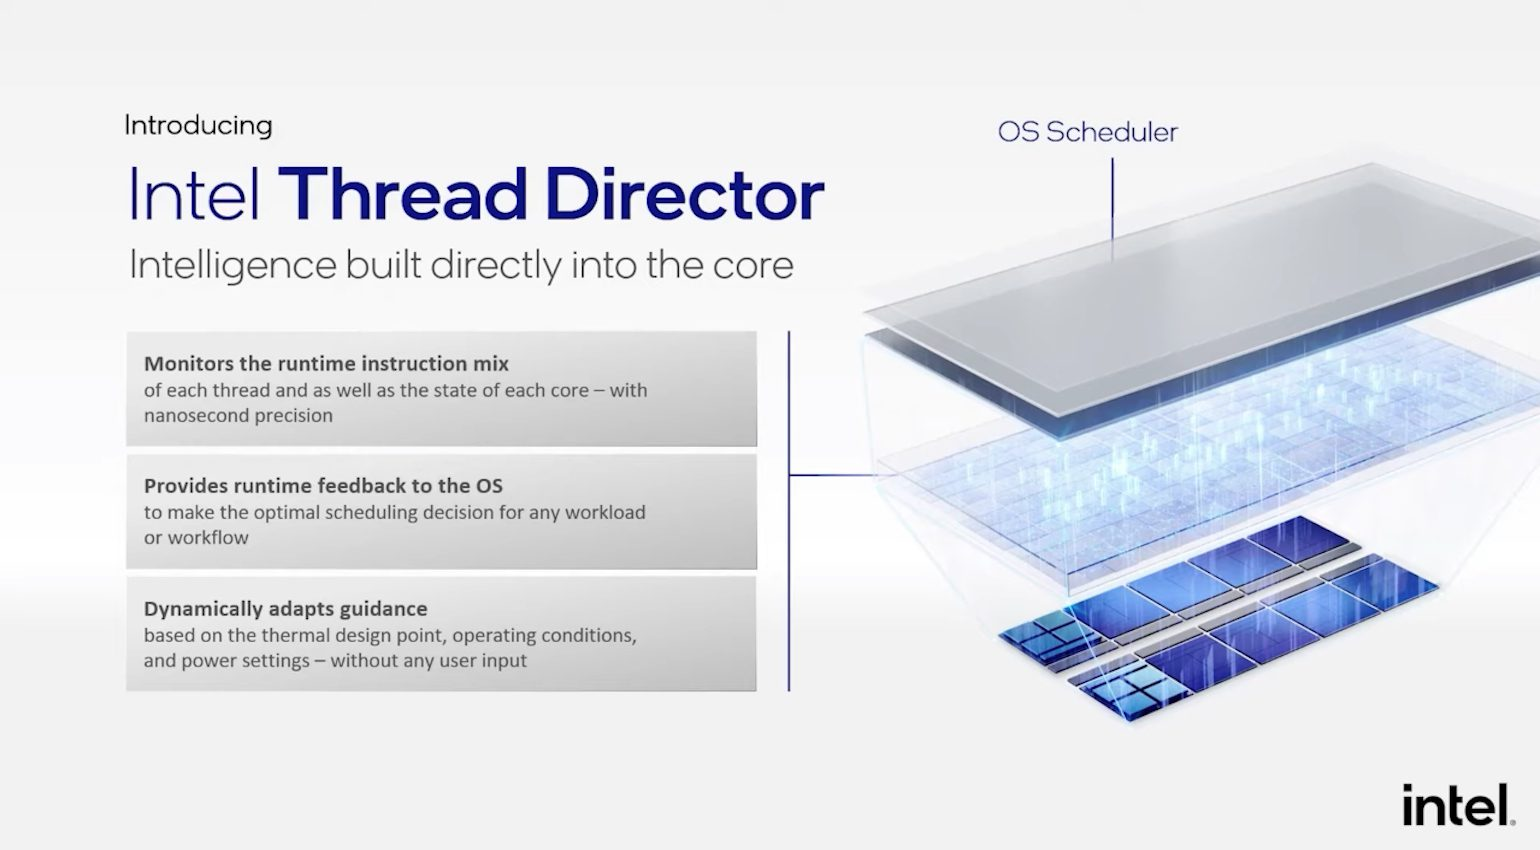 Thread Director manages the hybrid-core CPU architecture.